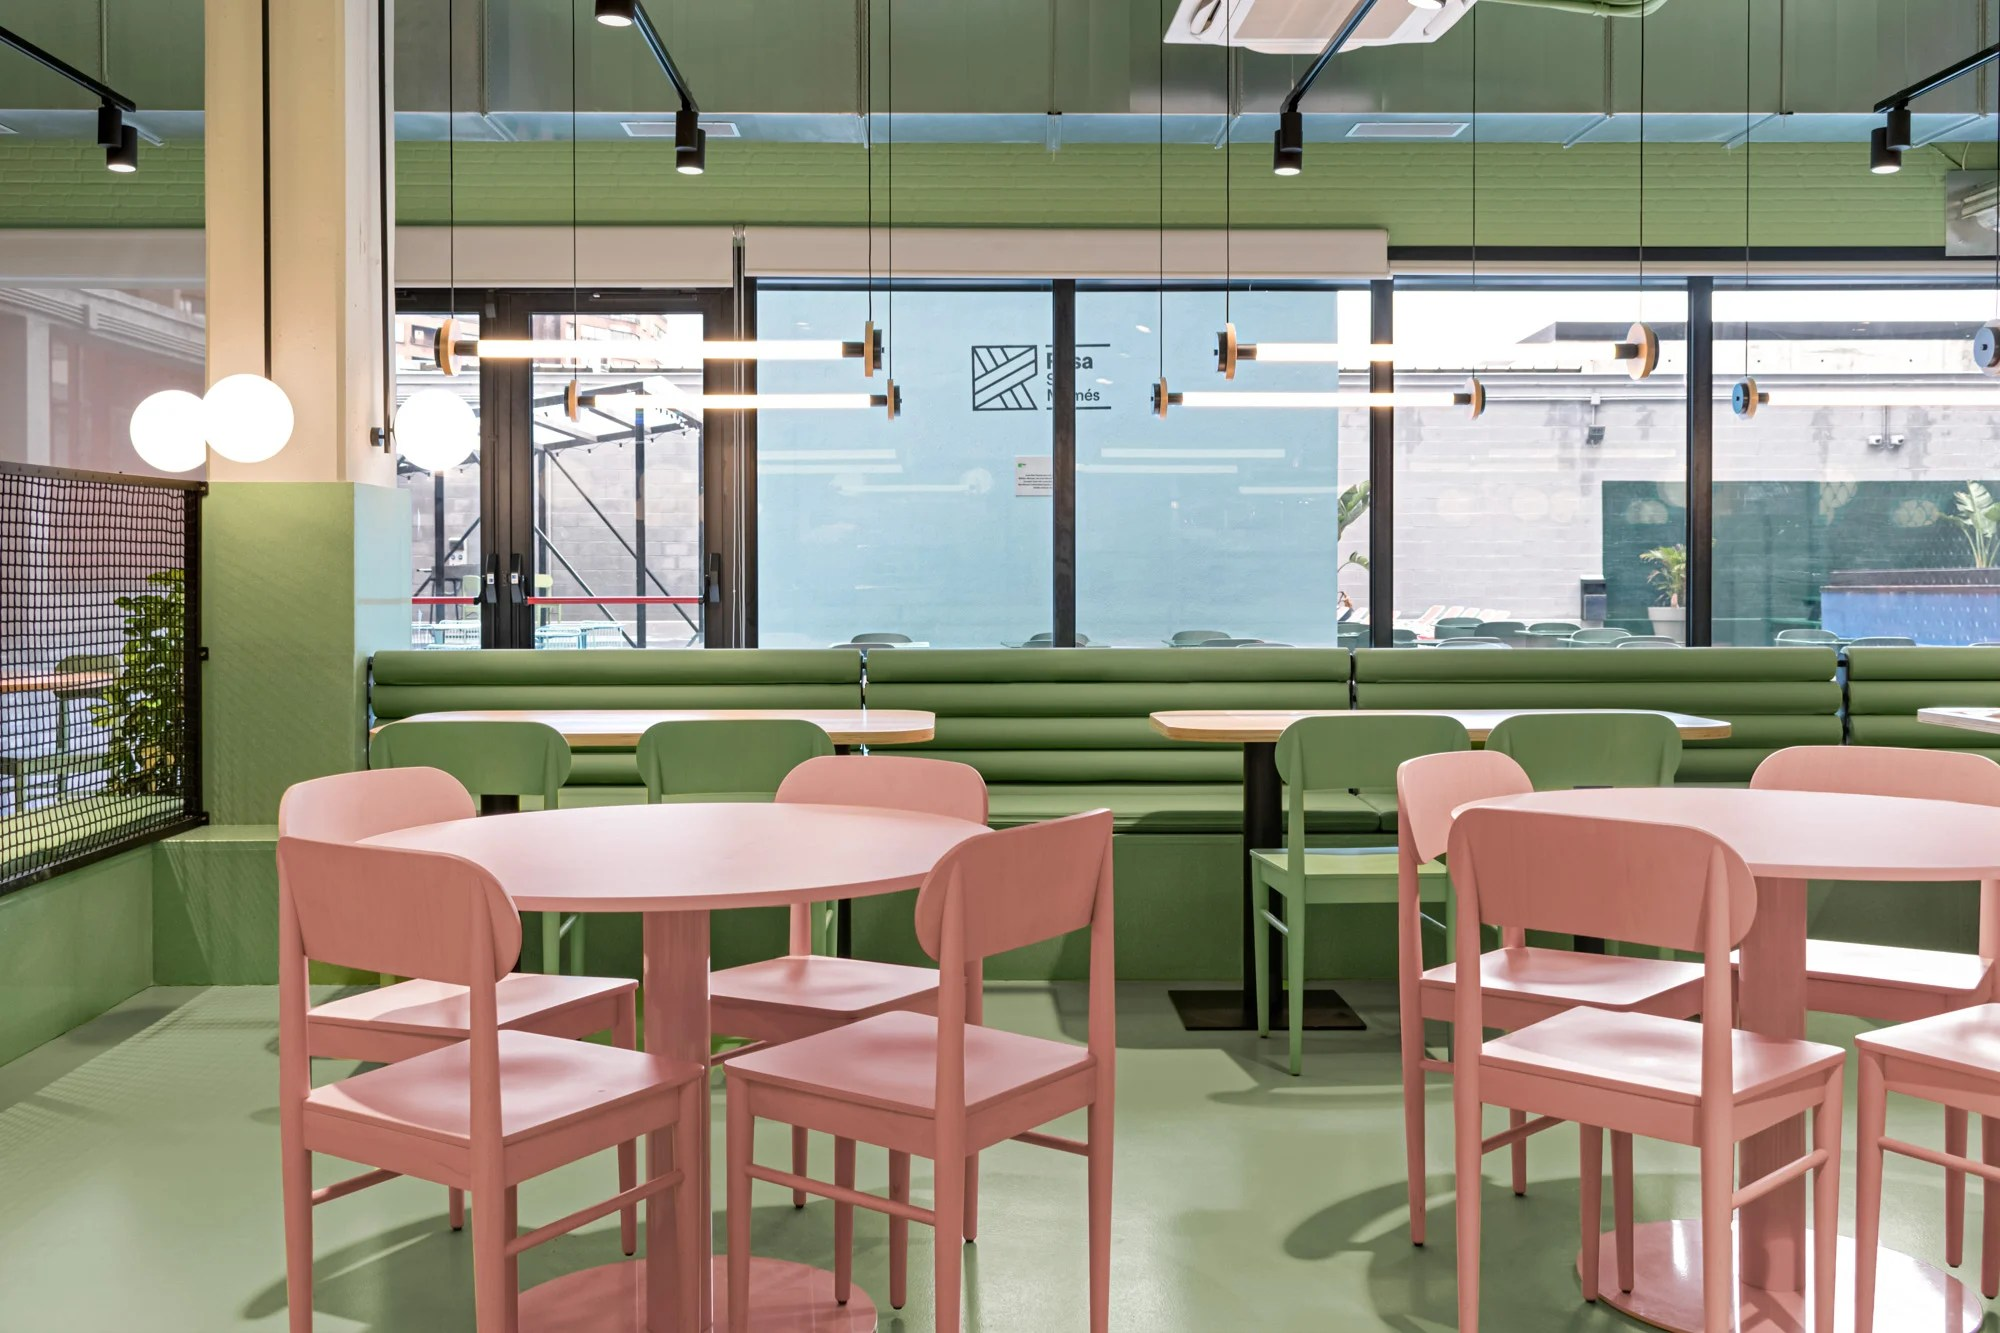 The dining area has green walls and floors